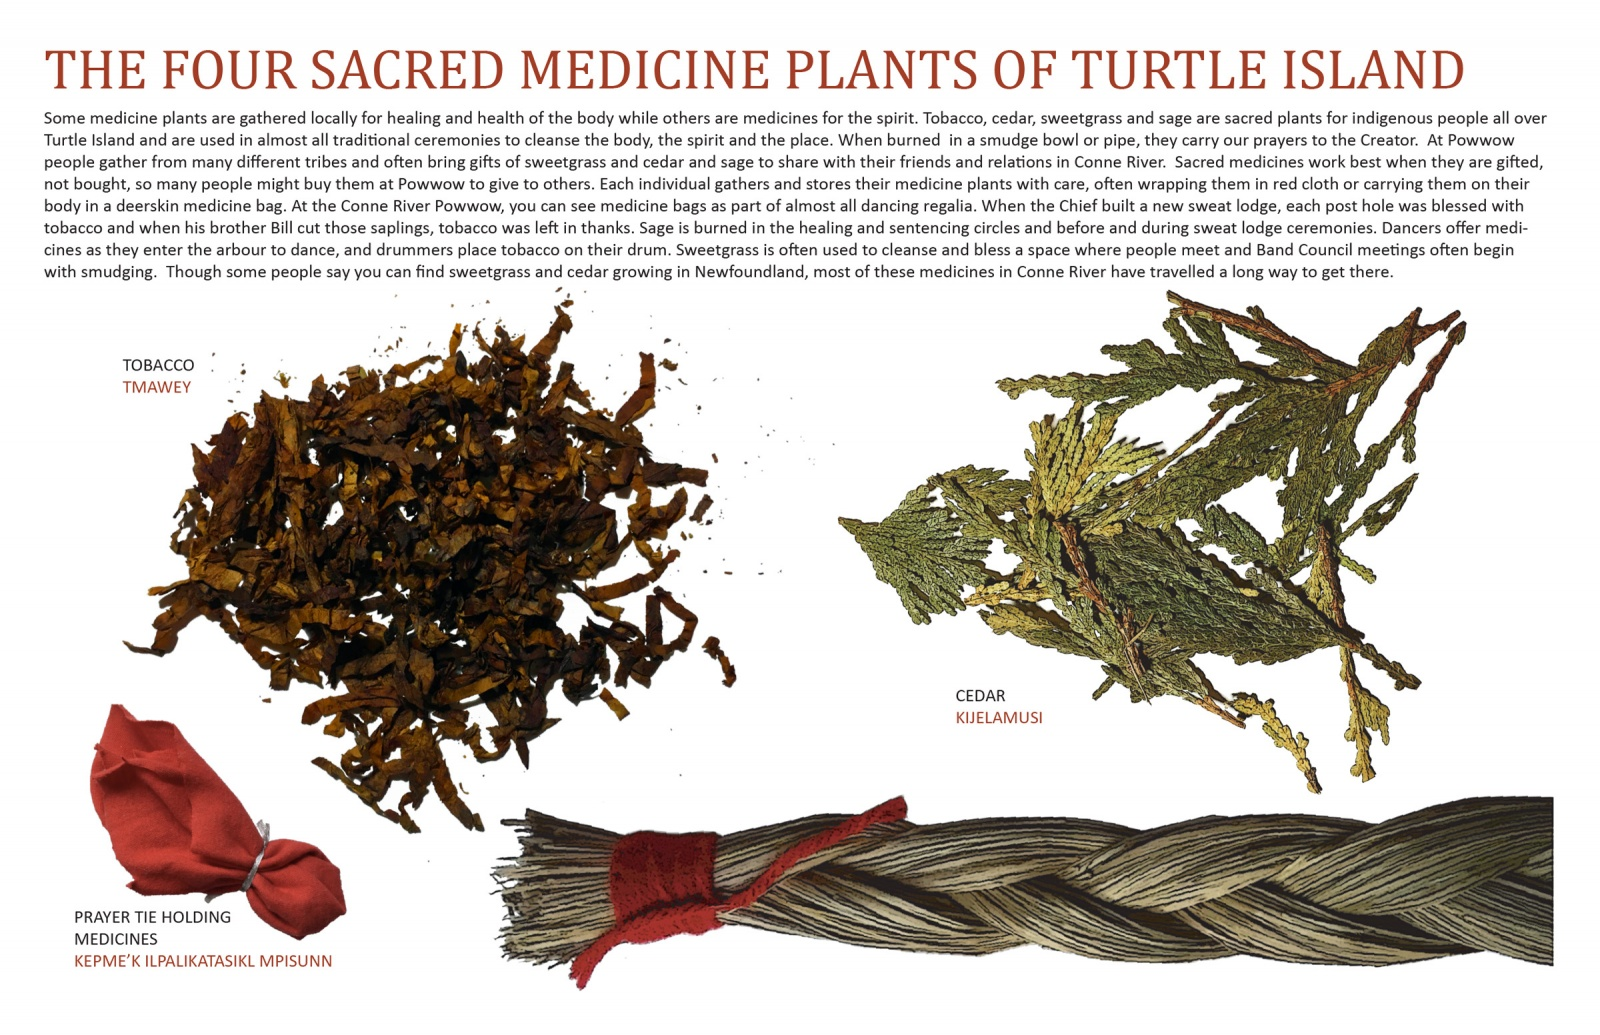 The Four Sacred Medicine Plants of Turtle Island